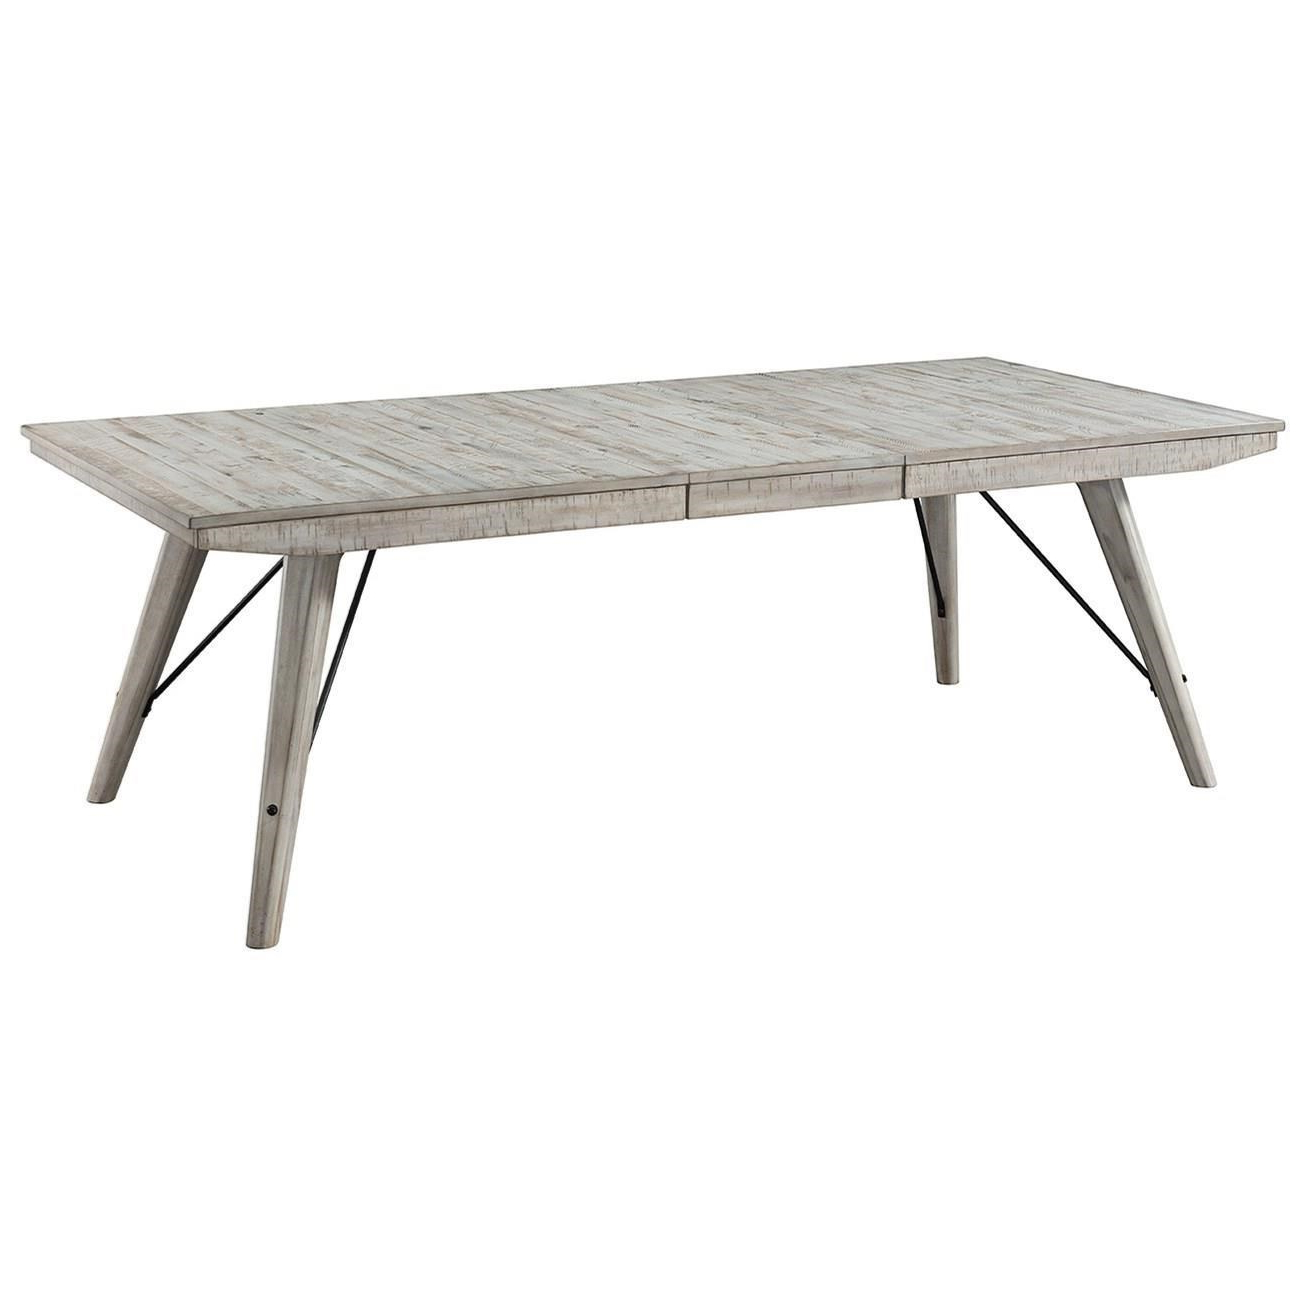 Widely Used Intercon Modern Rustic Contemporary Rectangular Dining Table Throughout Contemporary Rectangular Dining Tables (View 20 of 25)